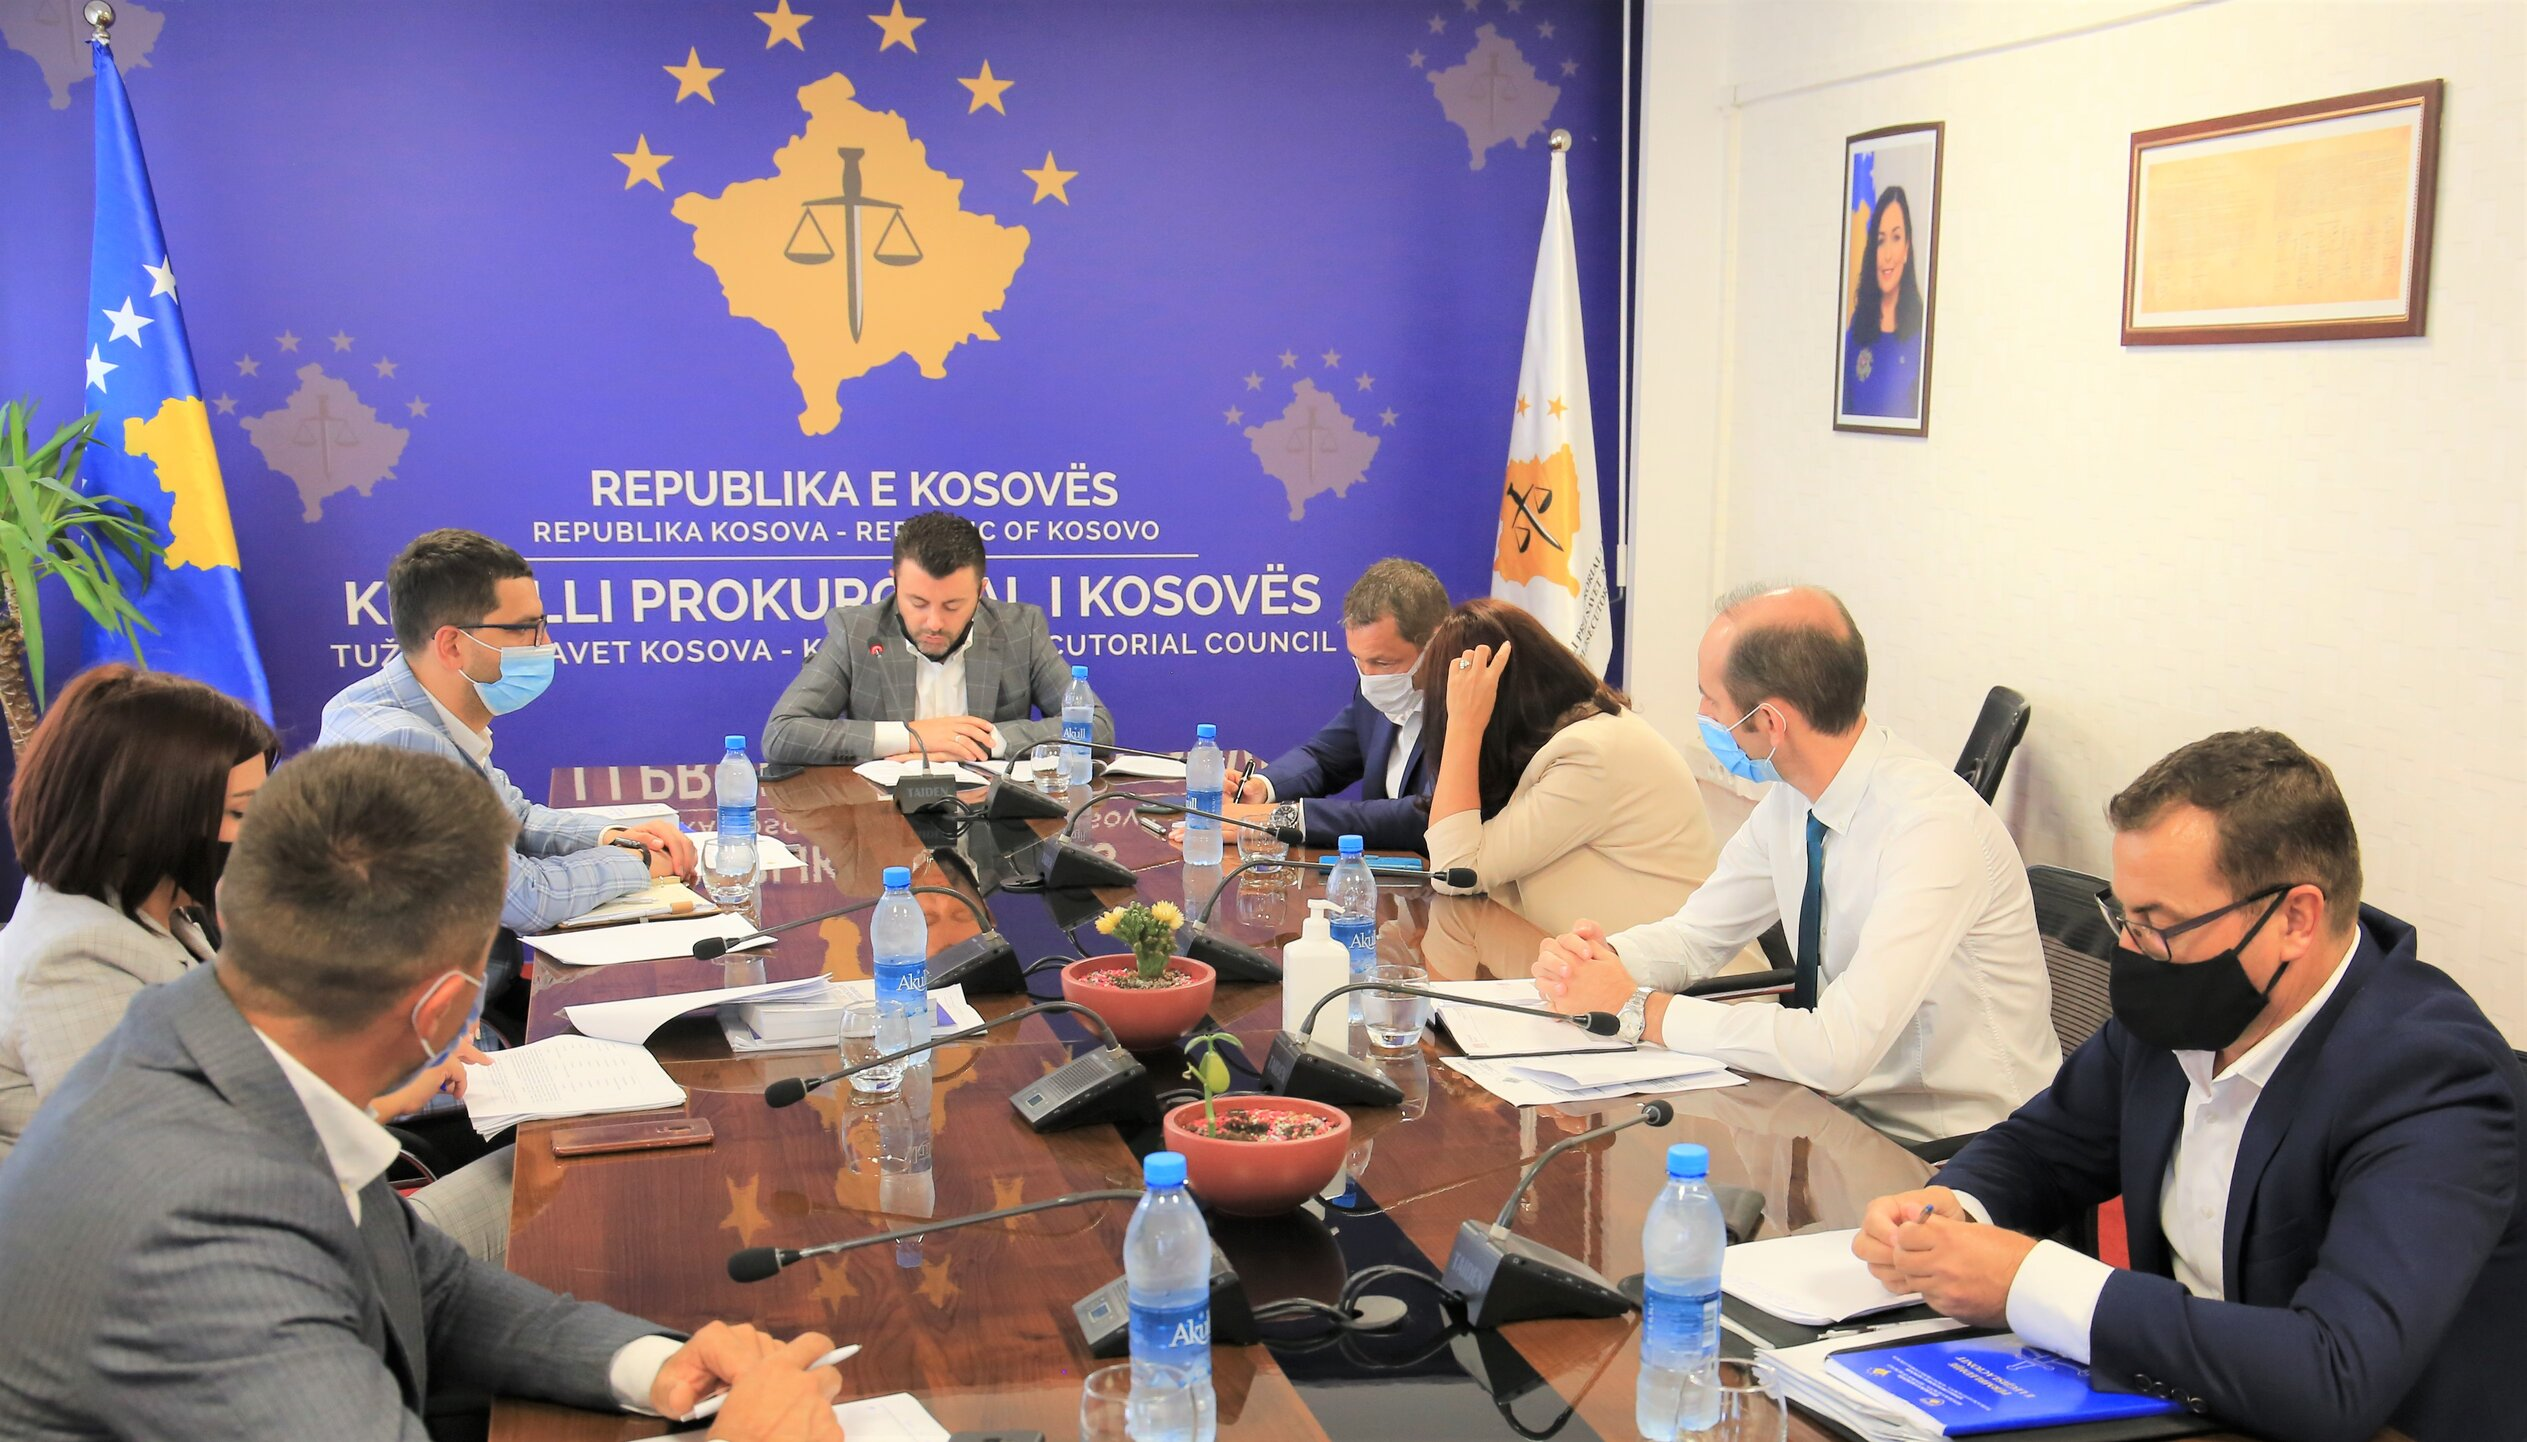 The first meeting of the Working Group for drafting the regulation for the election of the director of the KPCS and the PPRU is held